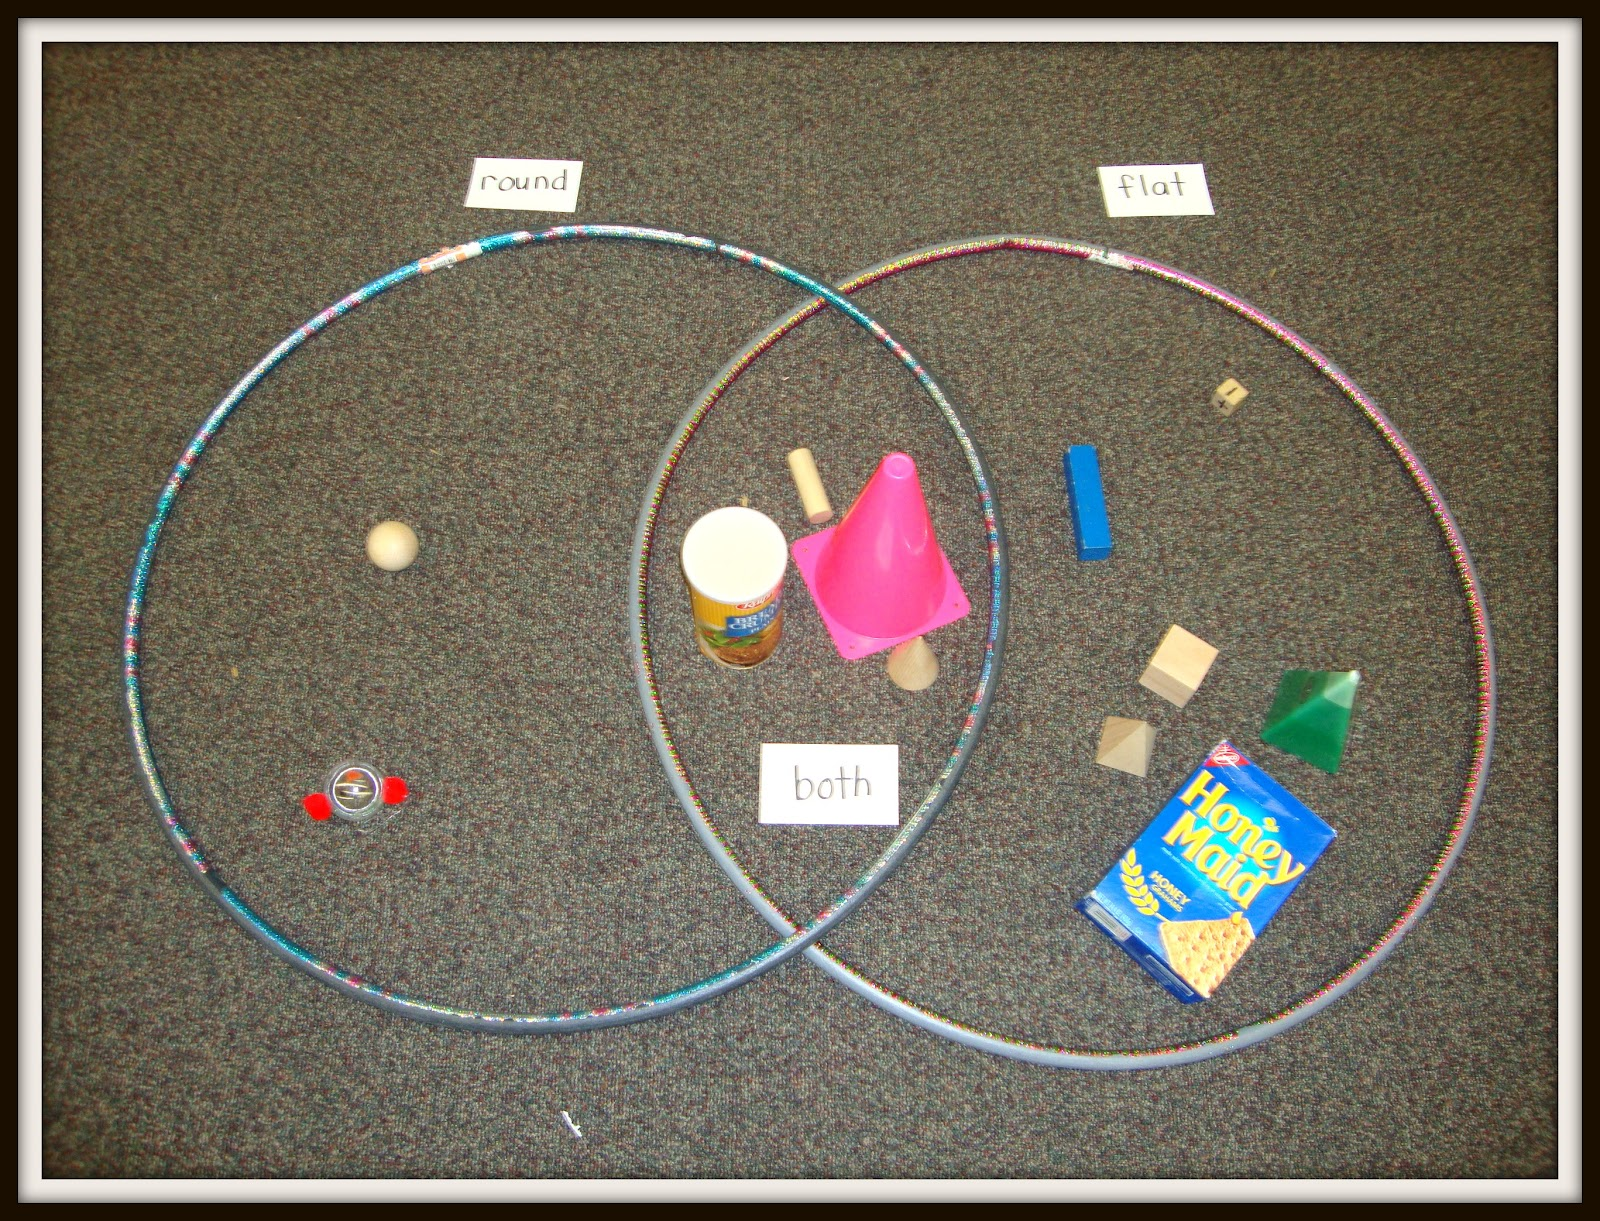 sorting 3d shapes venn diagram 230 volt pool pump wiring today in first grade solid figures and a winner